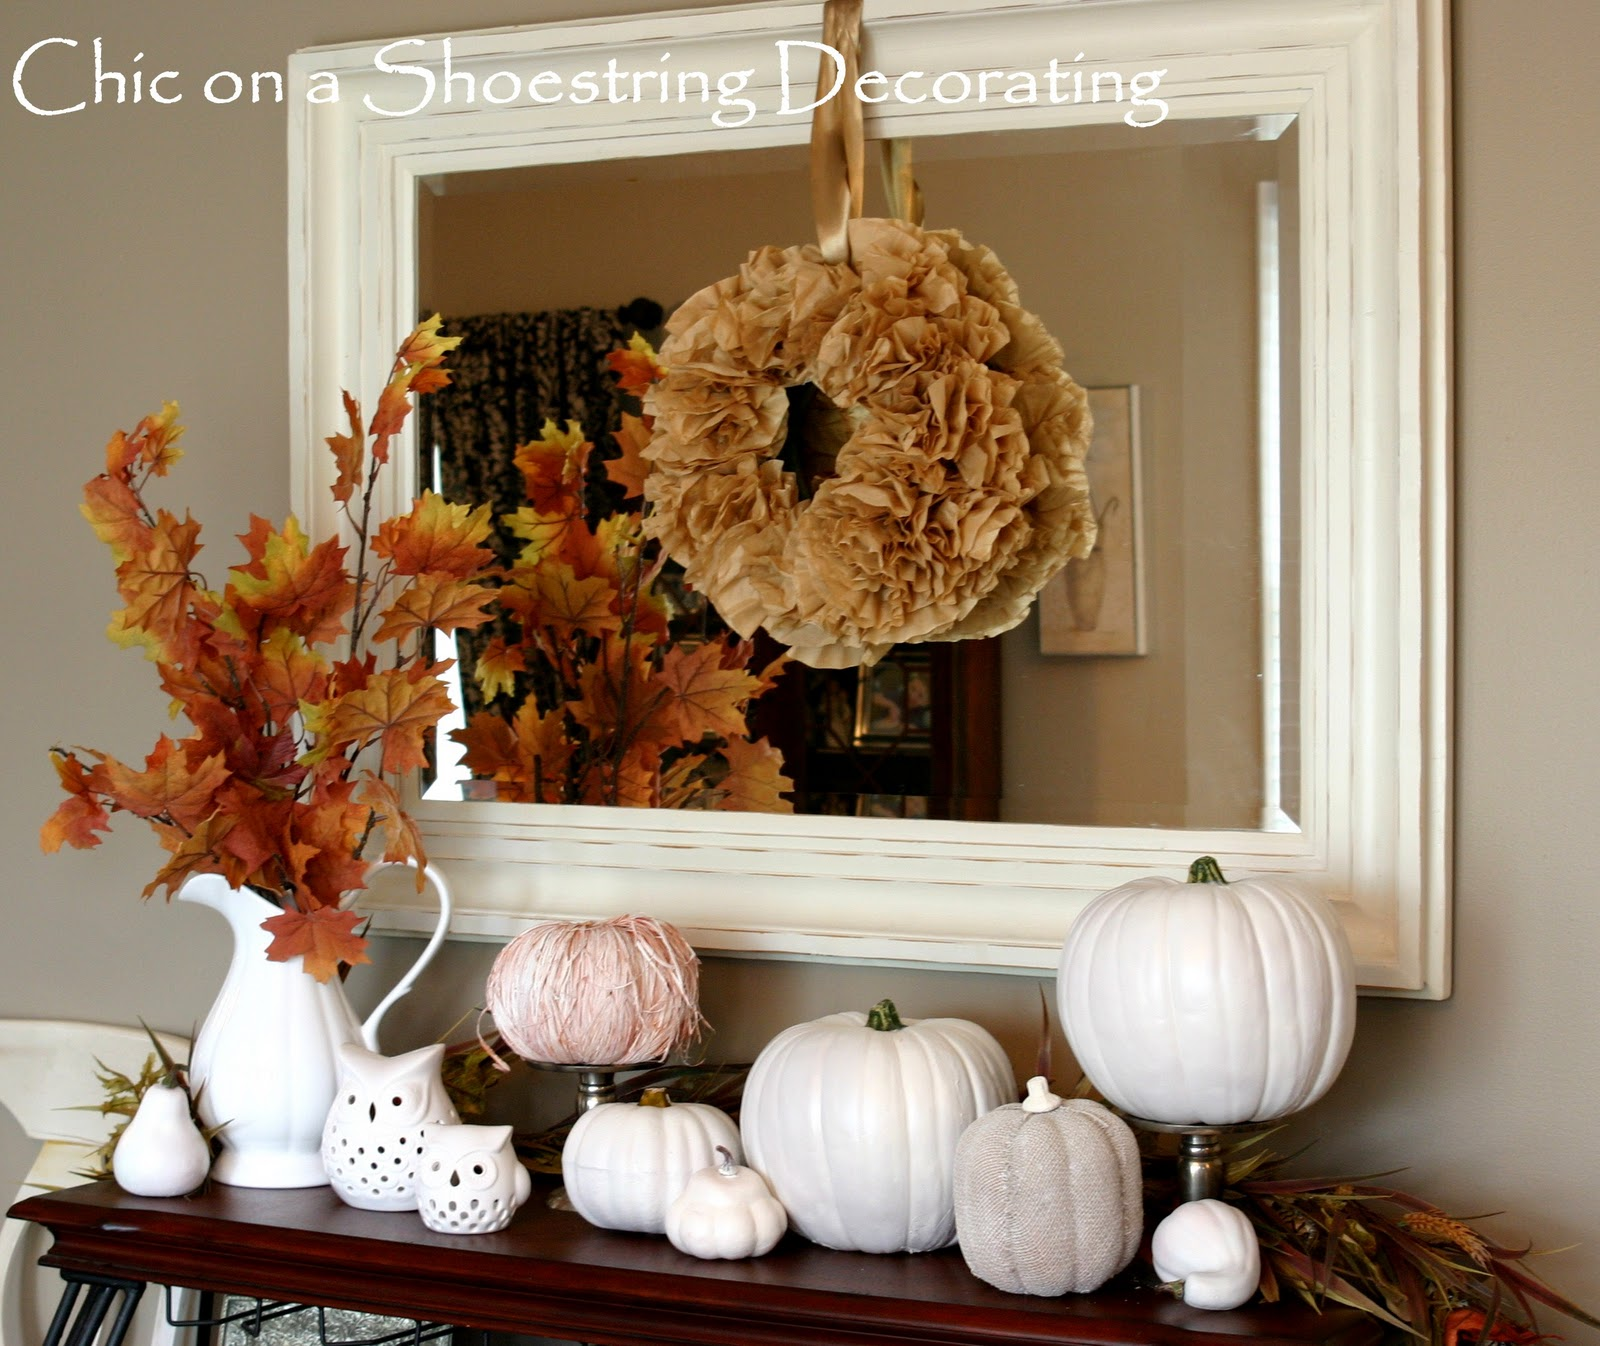 Chic on a shoestring decorating i heart white pumpkins for Fall mantel decor